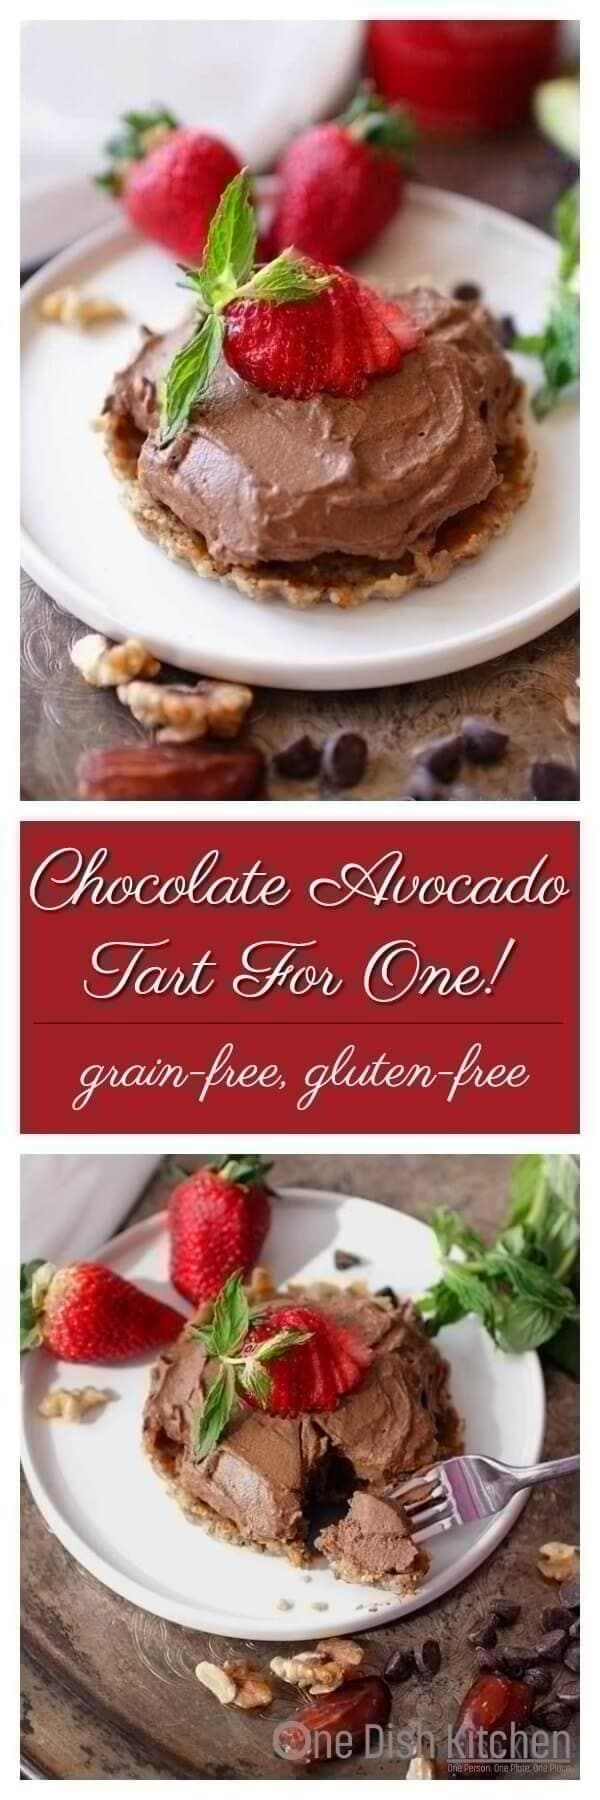 Simple, no-bake, luscious Chocolate Avocado Tart For One with a gluten-free crust made from dates and walnuts. A rich, creamy guilt free dessert that can be ready in minutes. Made with an avocado and cocoa powder and sweetened with a touch of melted chocolate and honey. | One Dish Kitchen